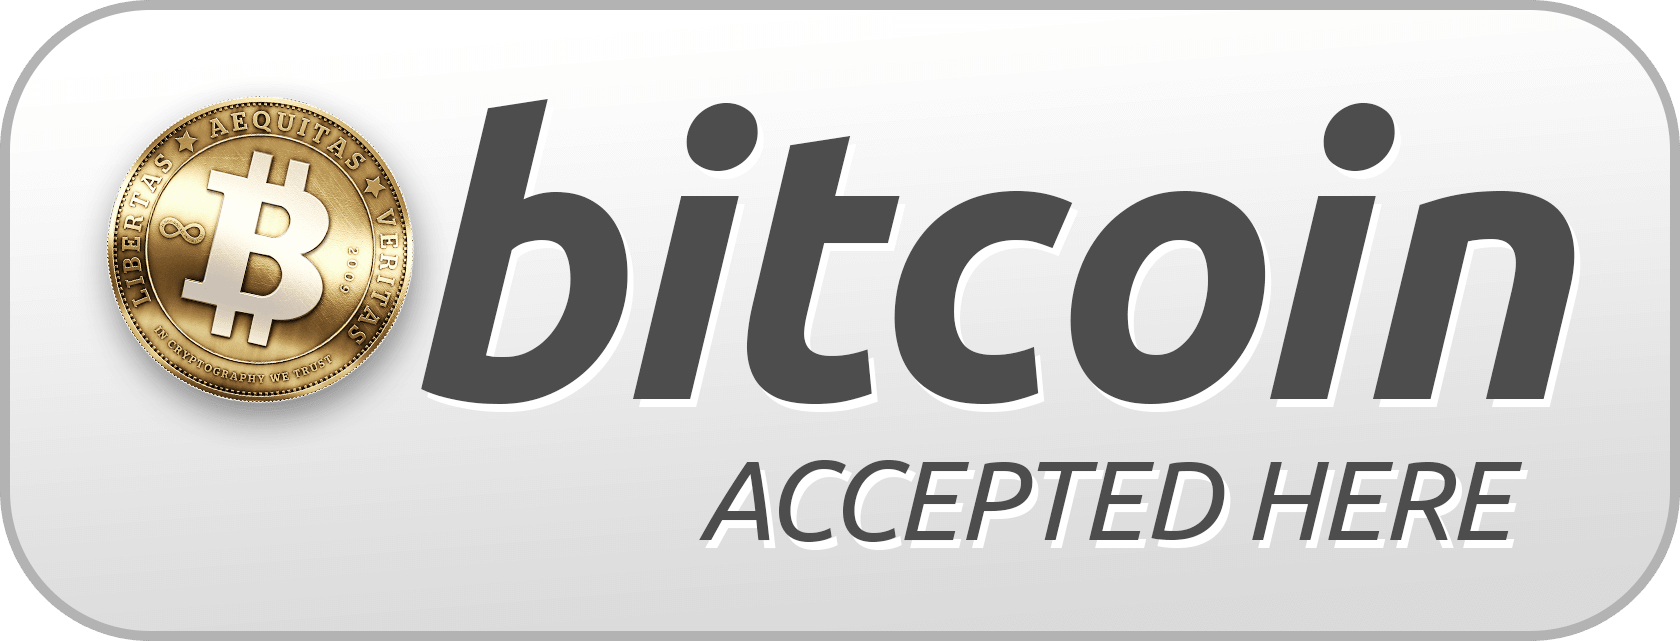 bitcoin-accepted-here_-_gold-big-1680px.png